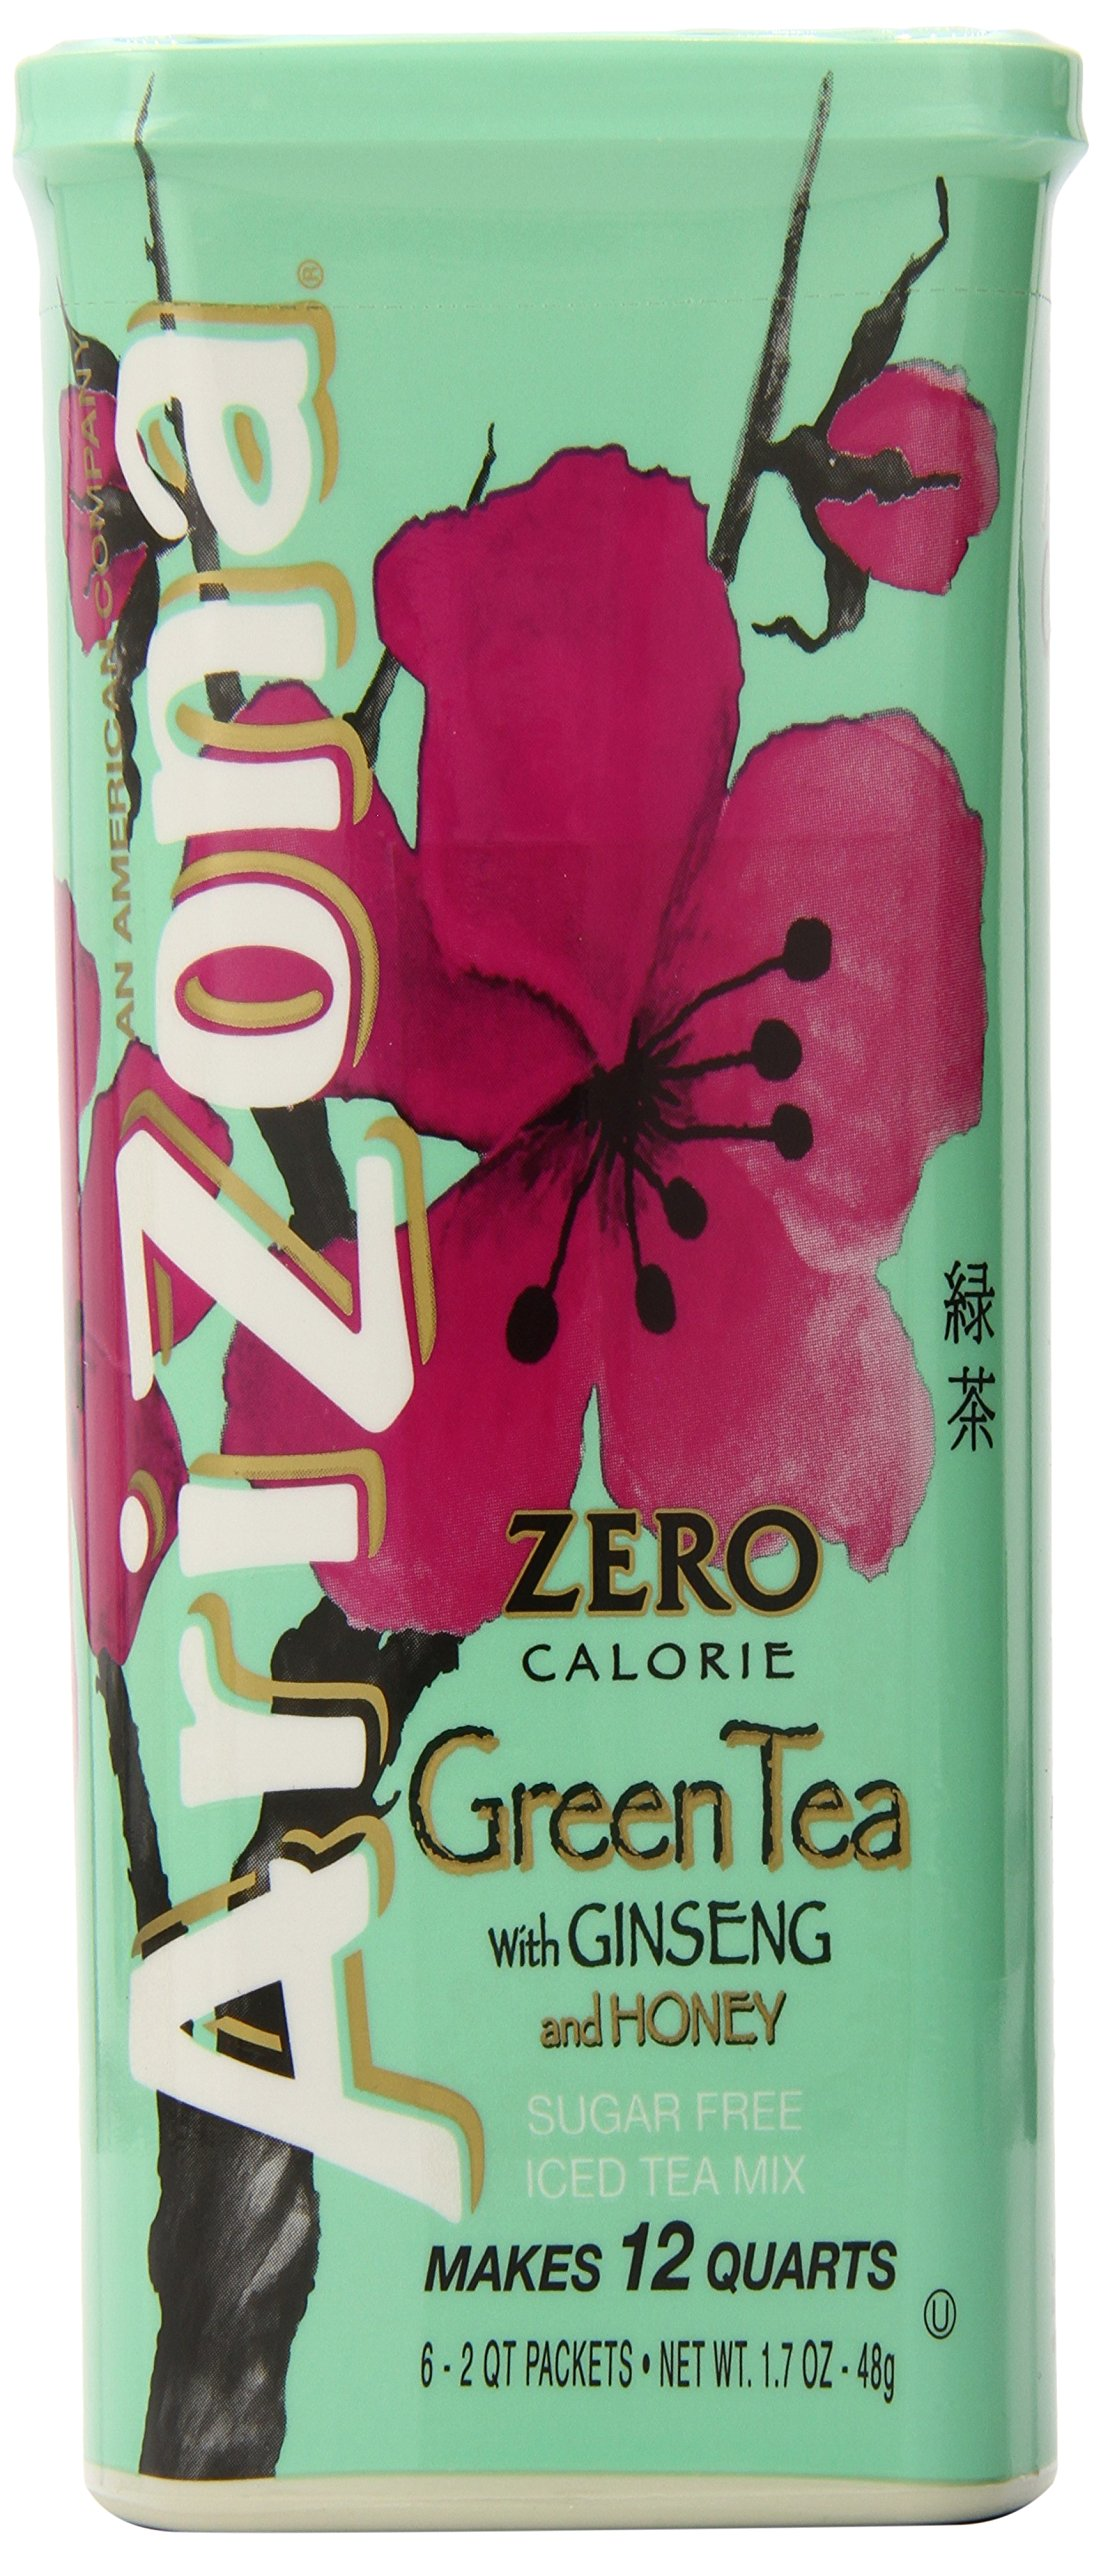 AriZona Sugar Free Green Tea with Ginseng & Honey Iced Tea Mix, 2 QT Canister (Pack of 4), Low Calorie Single Serving Drink Powder Packets, Just Add Water for Deliciously Refreshing Iced Tea Beverage